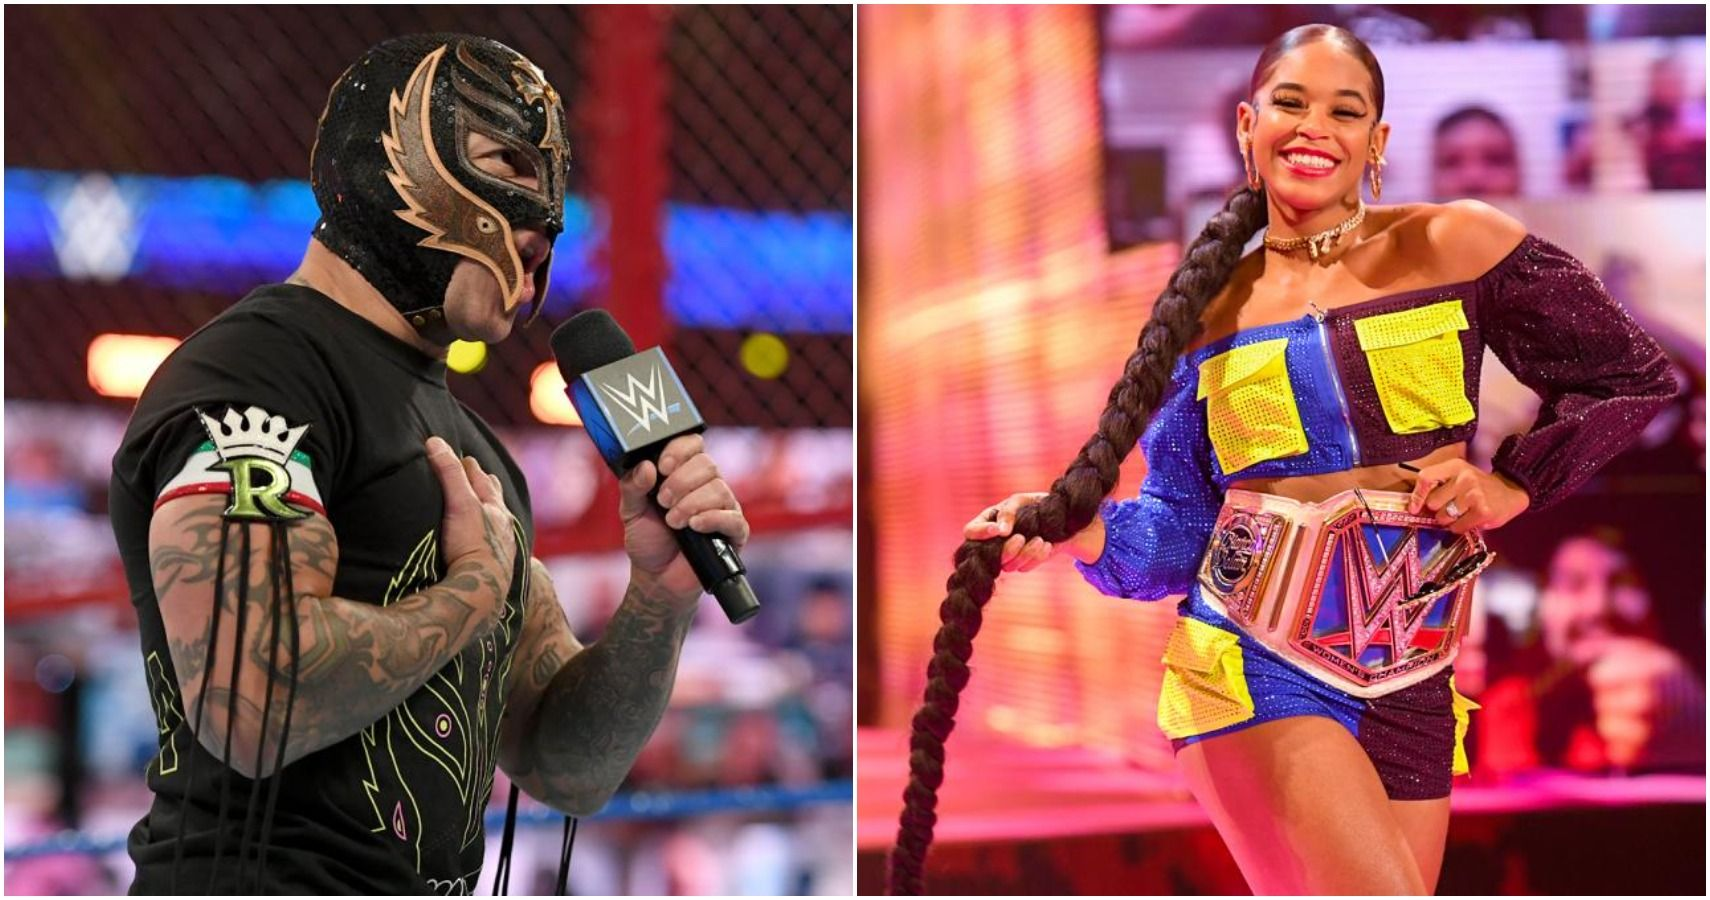 WWE Changed Hell In A Cell Plans So Female Superstars Can Take Center Stage [Theory]